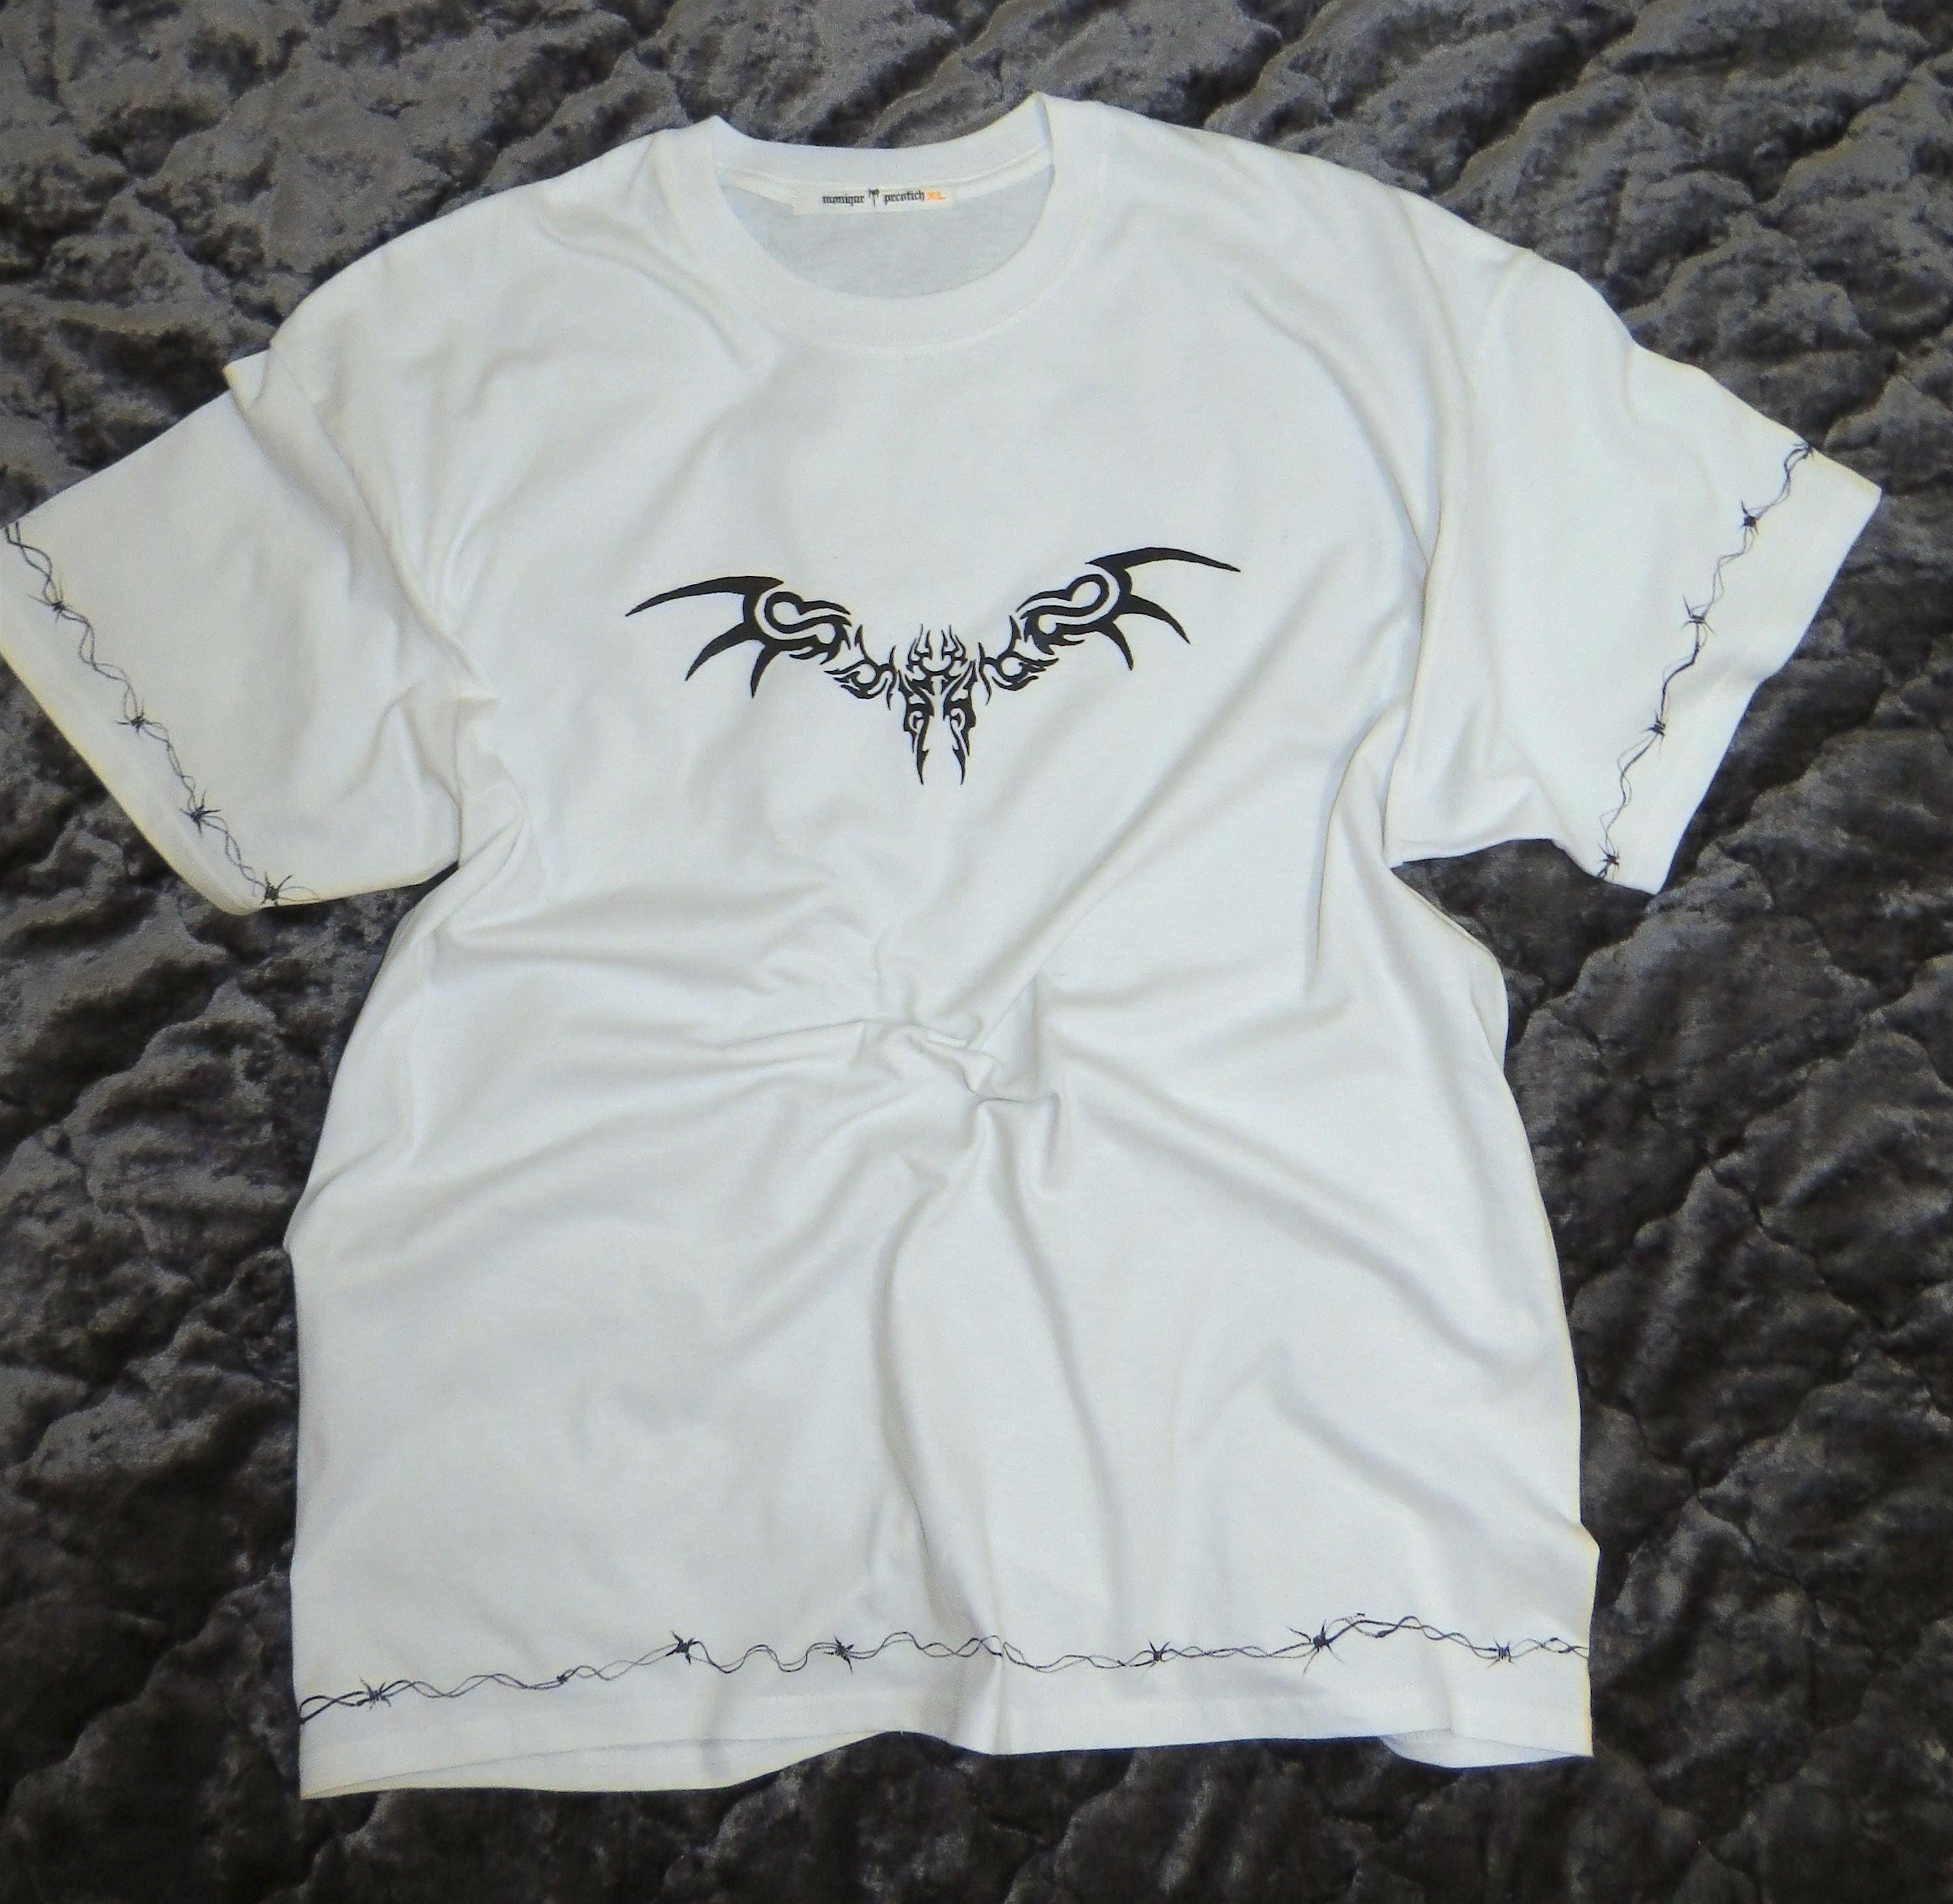 BARBED WIRE ANG3L~~#~~~#~ T-shirt